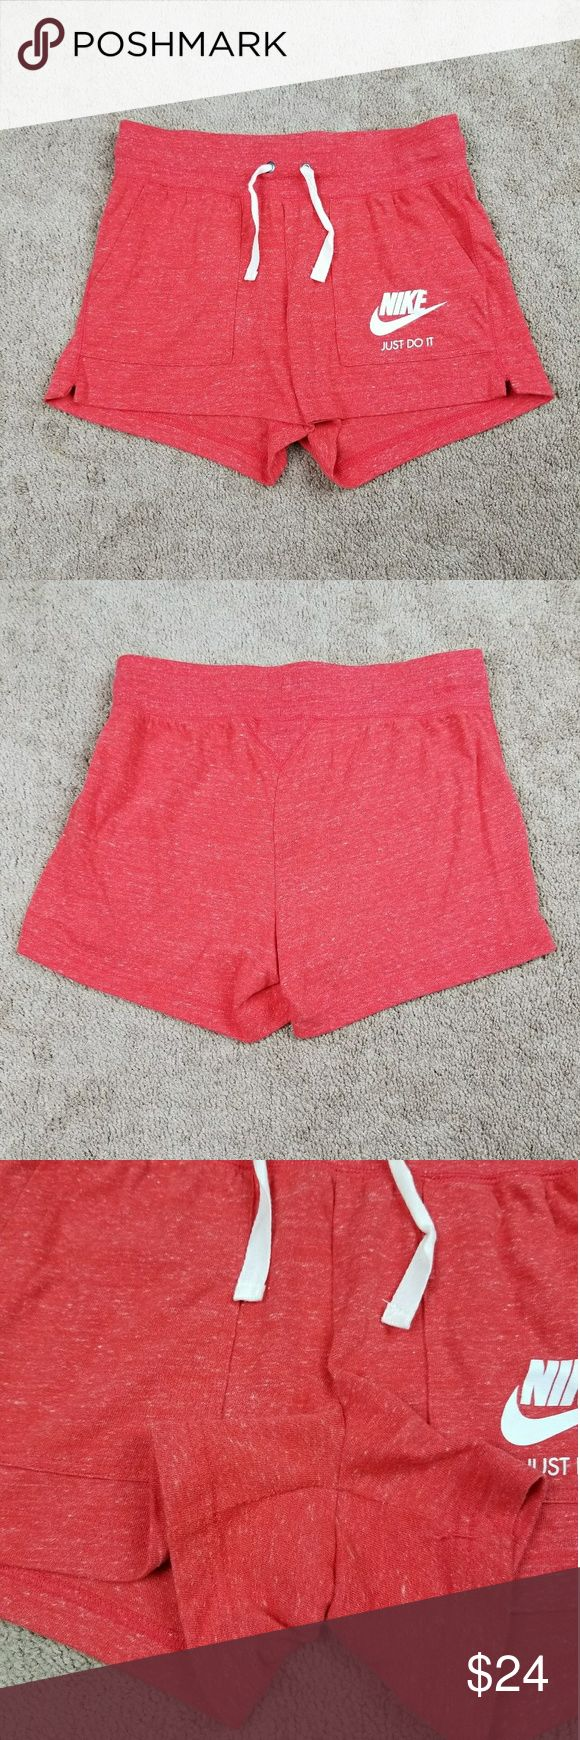 Nike Just Do It Organic Cotton Shorts Nike Just Do It Organic Cotton Shorts  Size - Small  Heathered Red  Drawstring shorts  Great Condition No rips or staining  Very comfy fit  60% certified organically grown cotton  40% recycled Polyster Nike Shorts